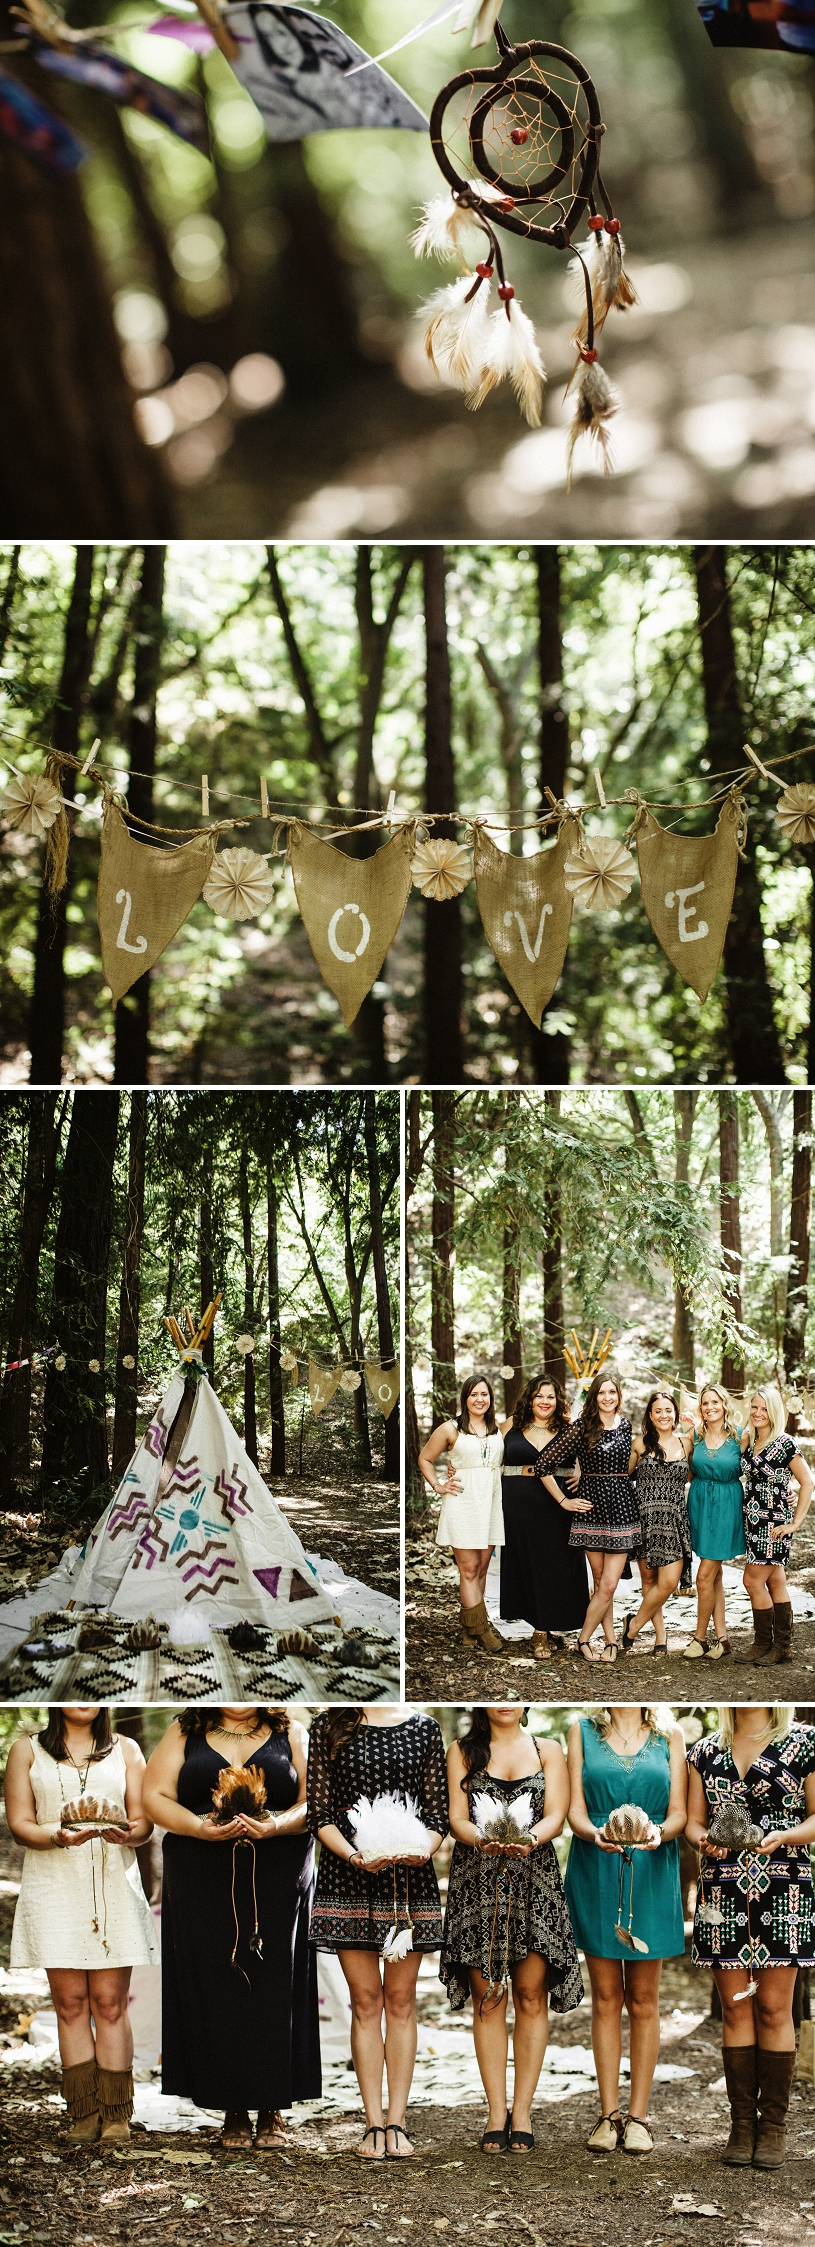 Adorable Native American Bachelorette Party theme in Big Sur